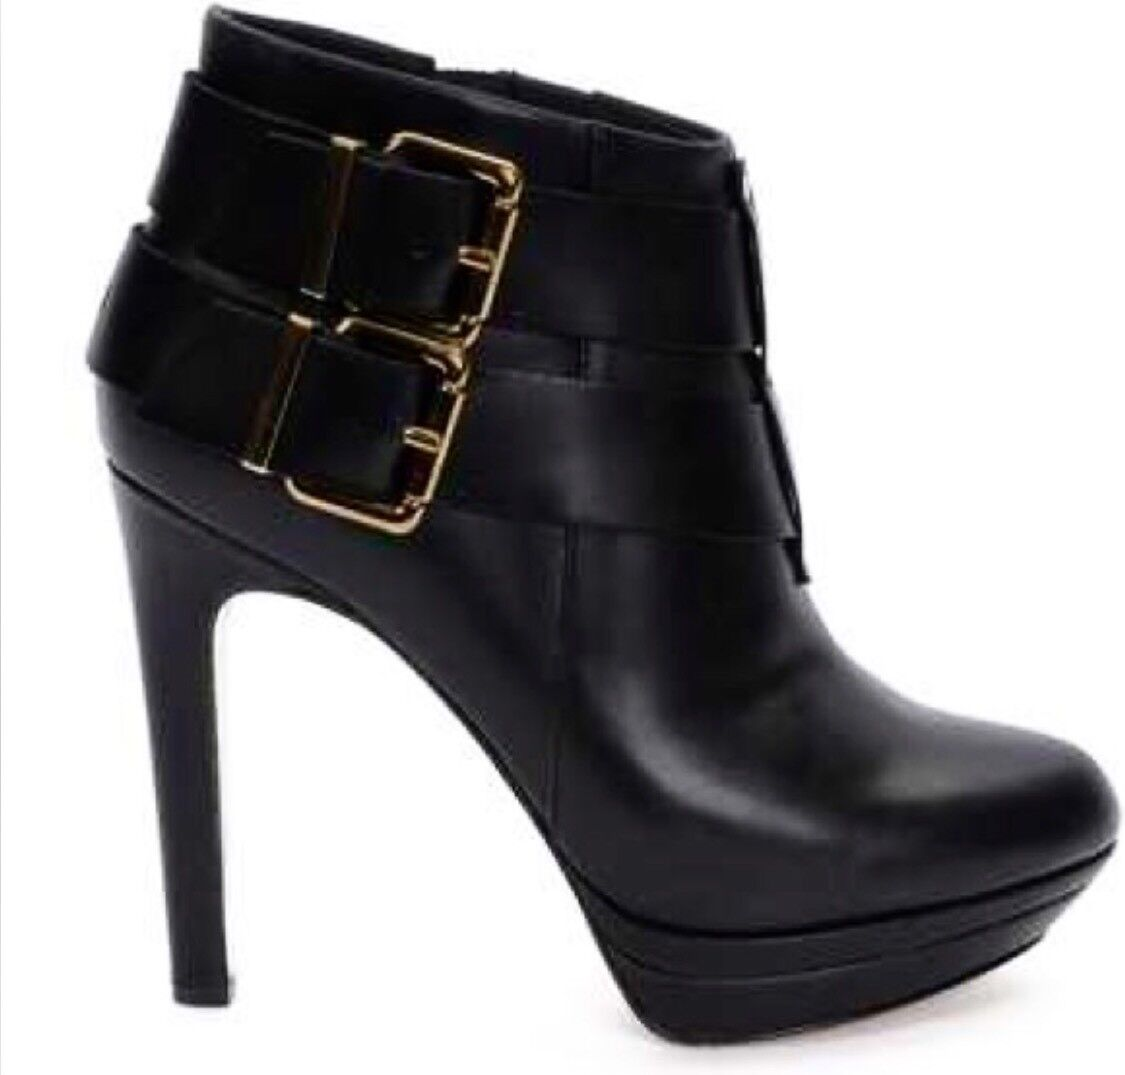 NEW BUCKLE WOMEN DIESEL BLACK LEATHER BUCKLE NEW BELTED ANKLE Stiefel HEELS SIZE 7.5  8 c090a5